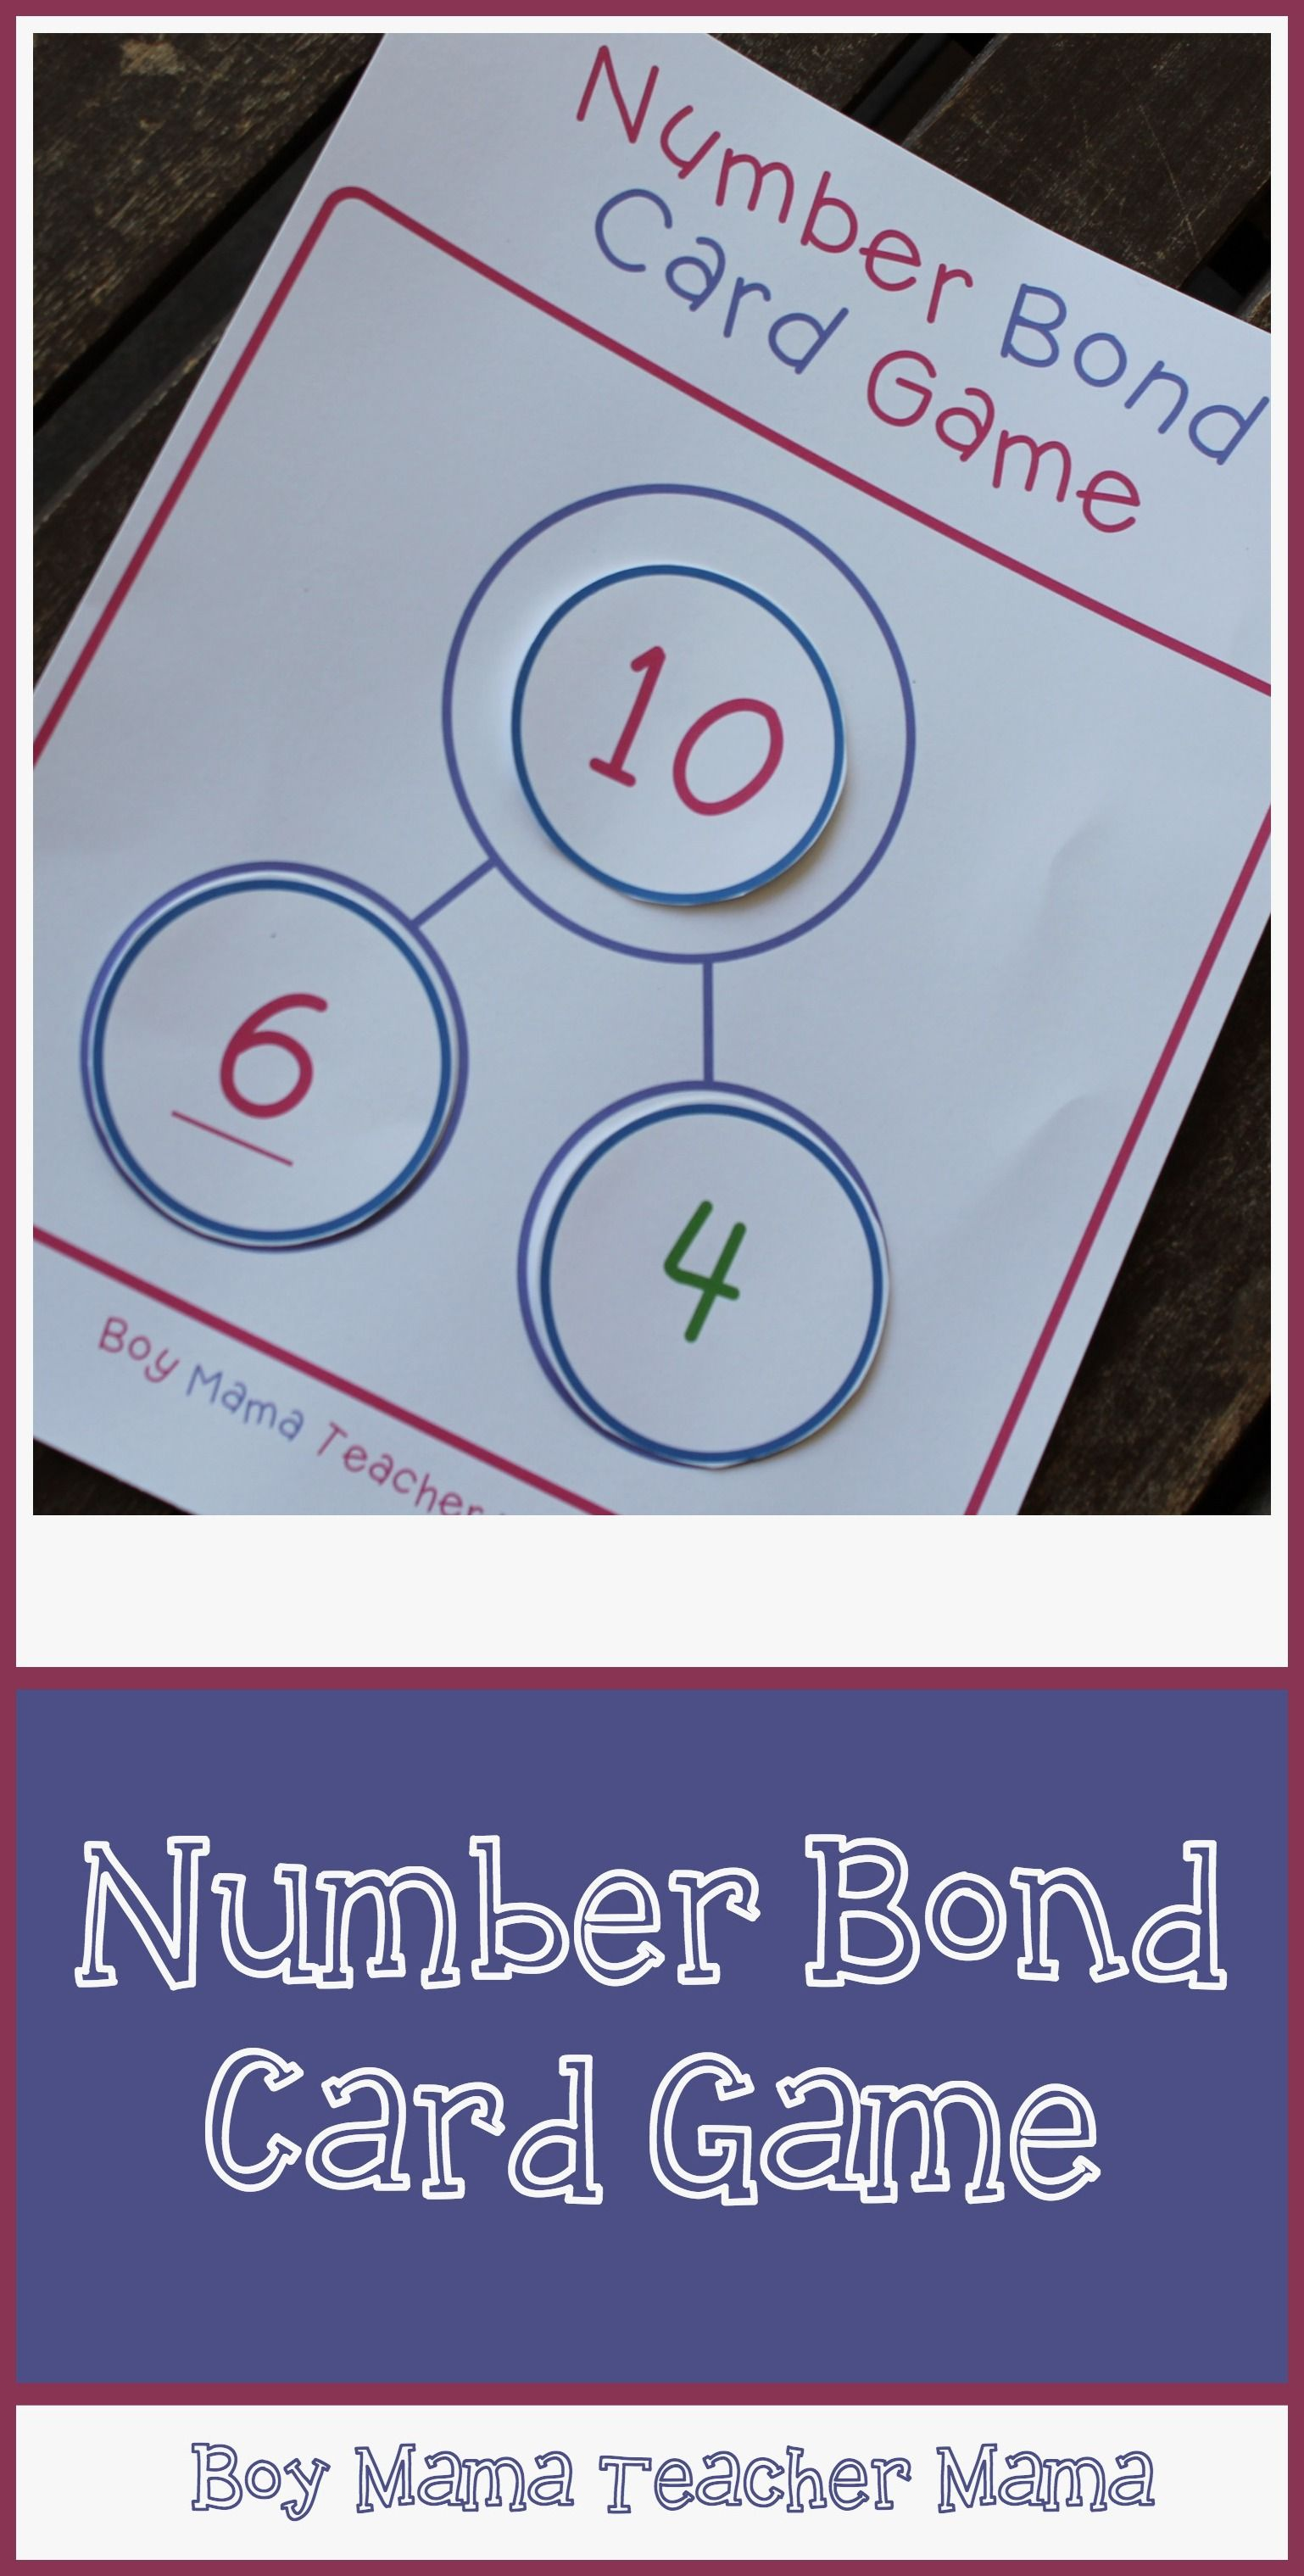 Teacher Mama  Number Bond Card Game   Number Bonds   Pinterest     Teacher Mama  Number Bond Card Game   Simple to make or just use playing  cards